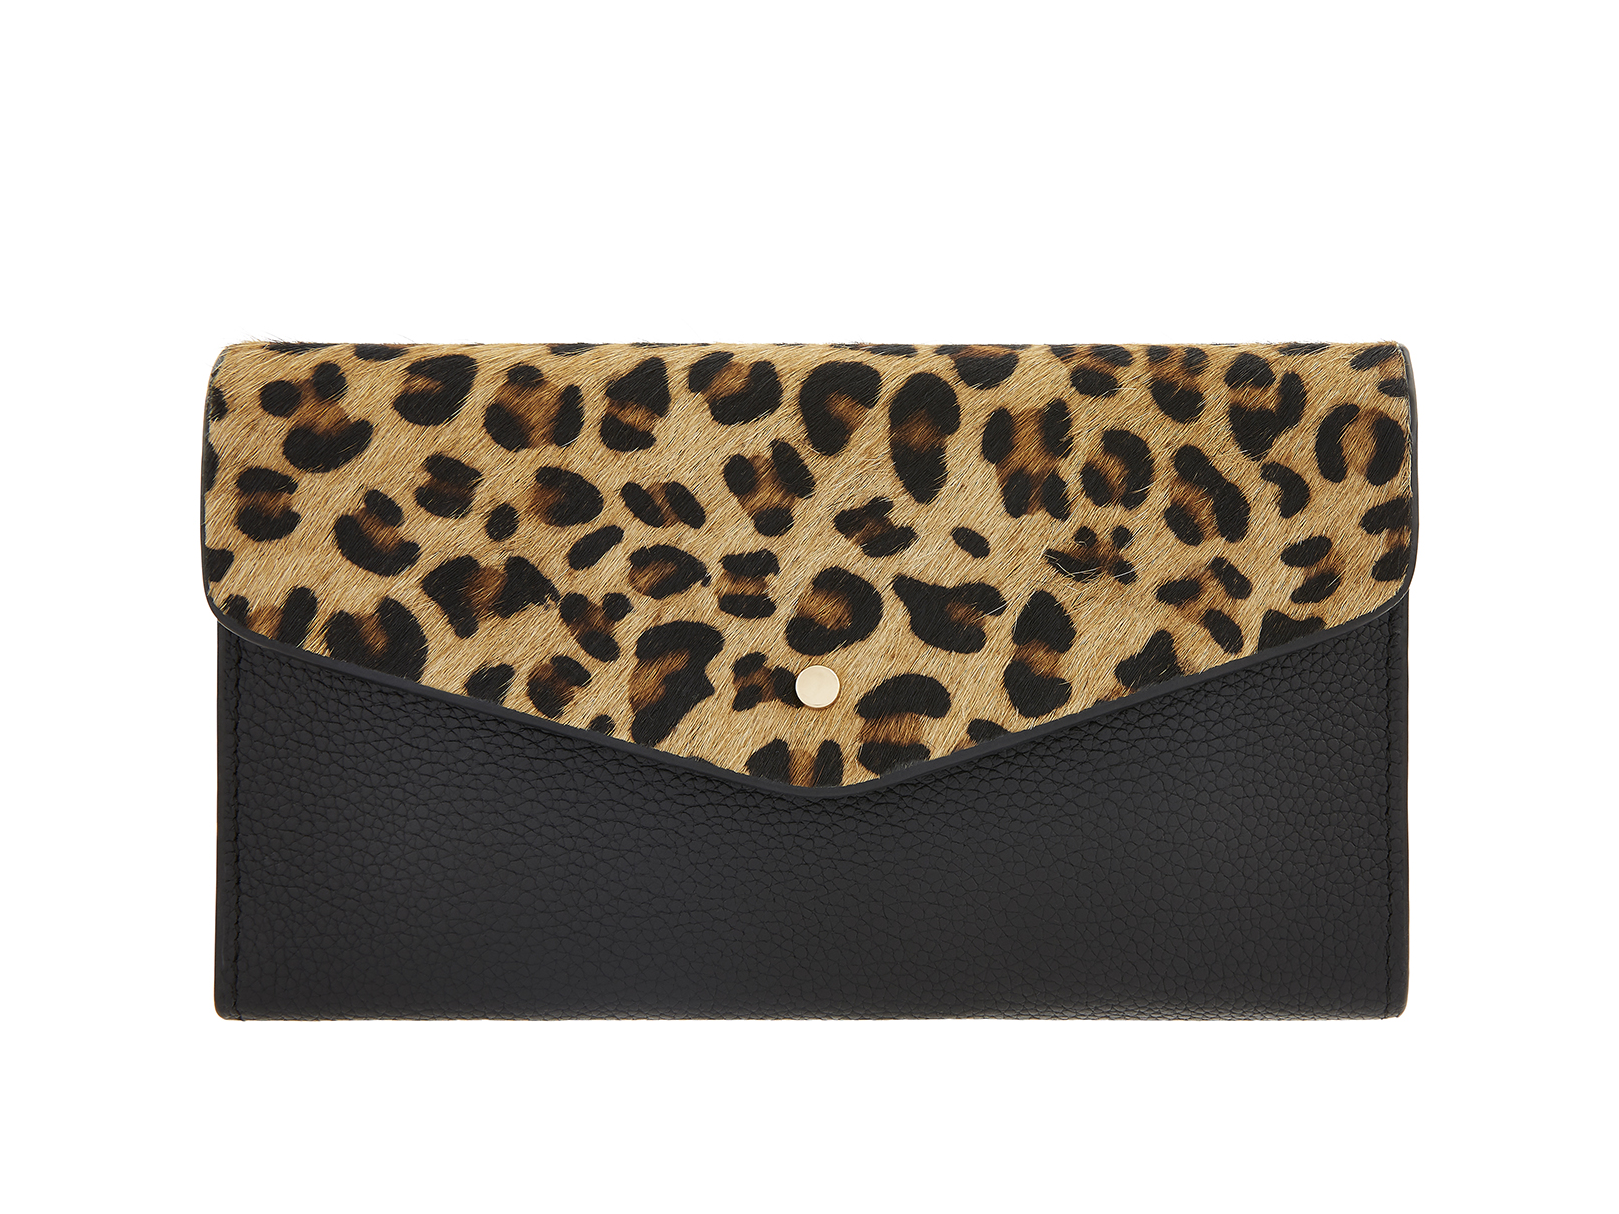 c105125e0e3 Best women's wallets, purses and cardholders with pockets, card ...